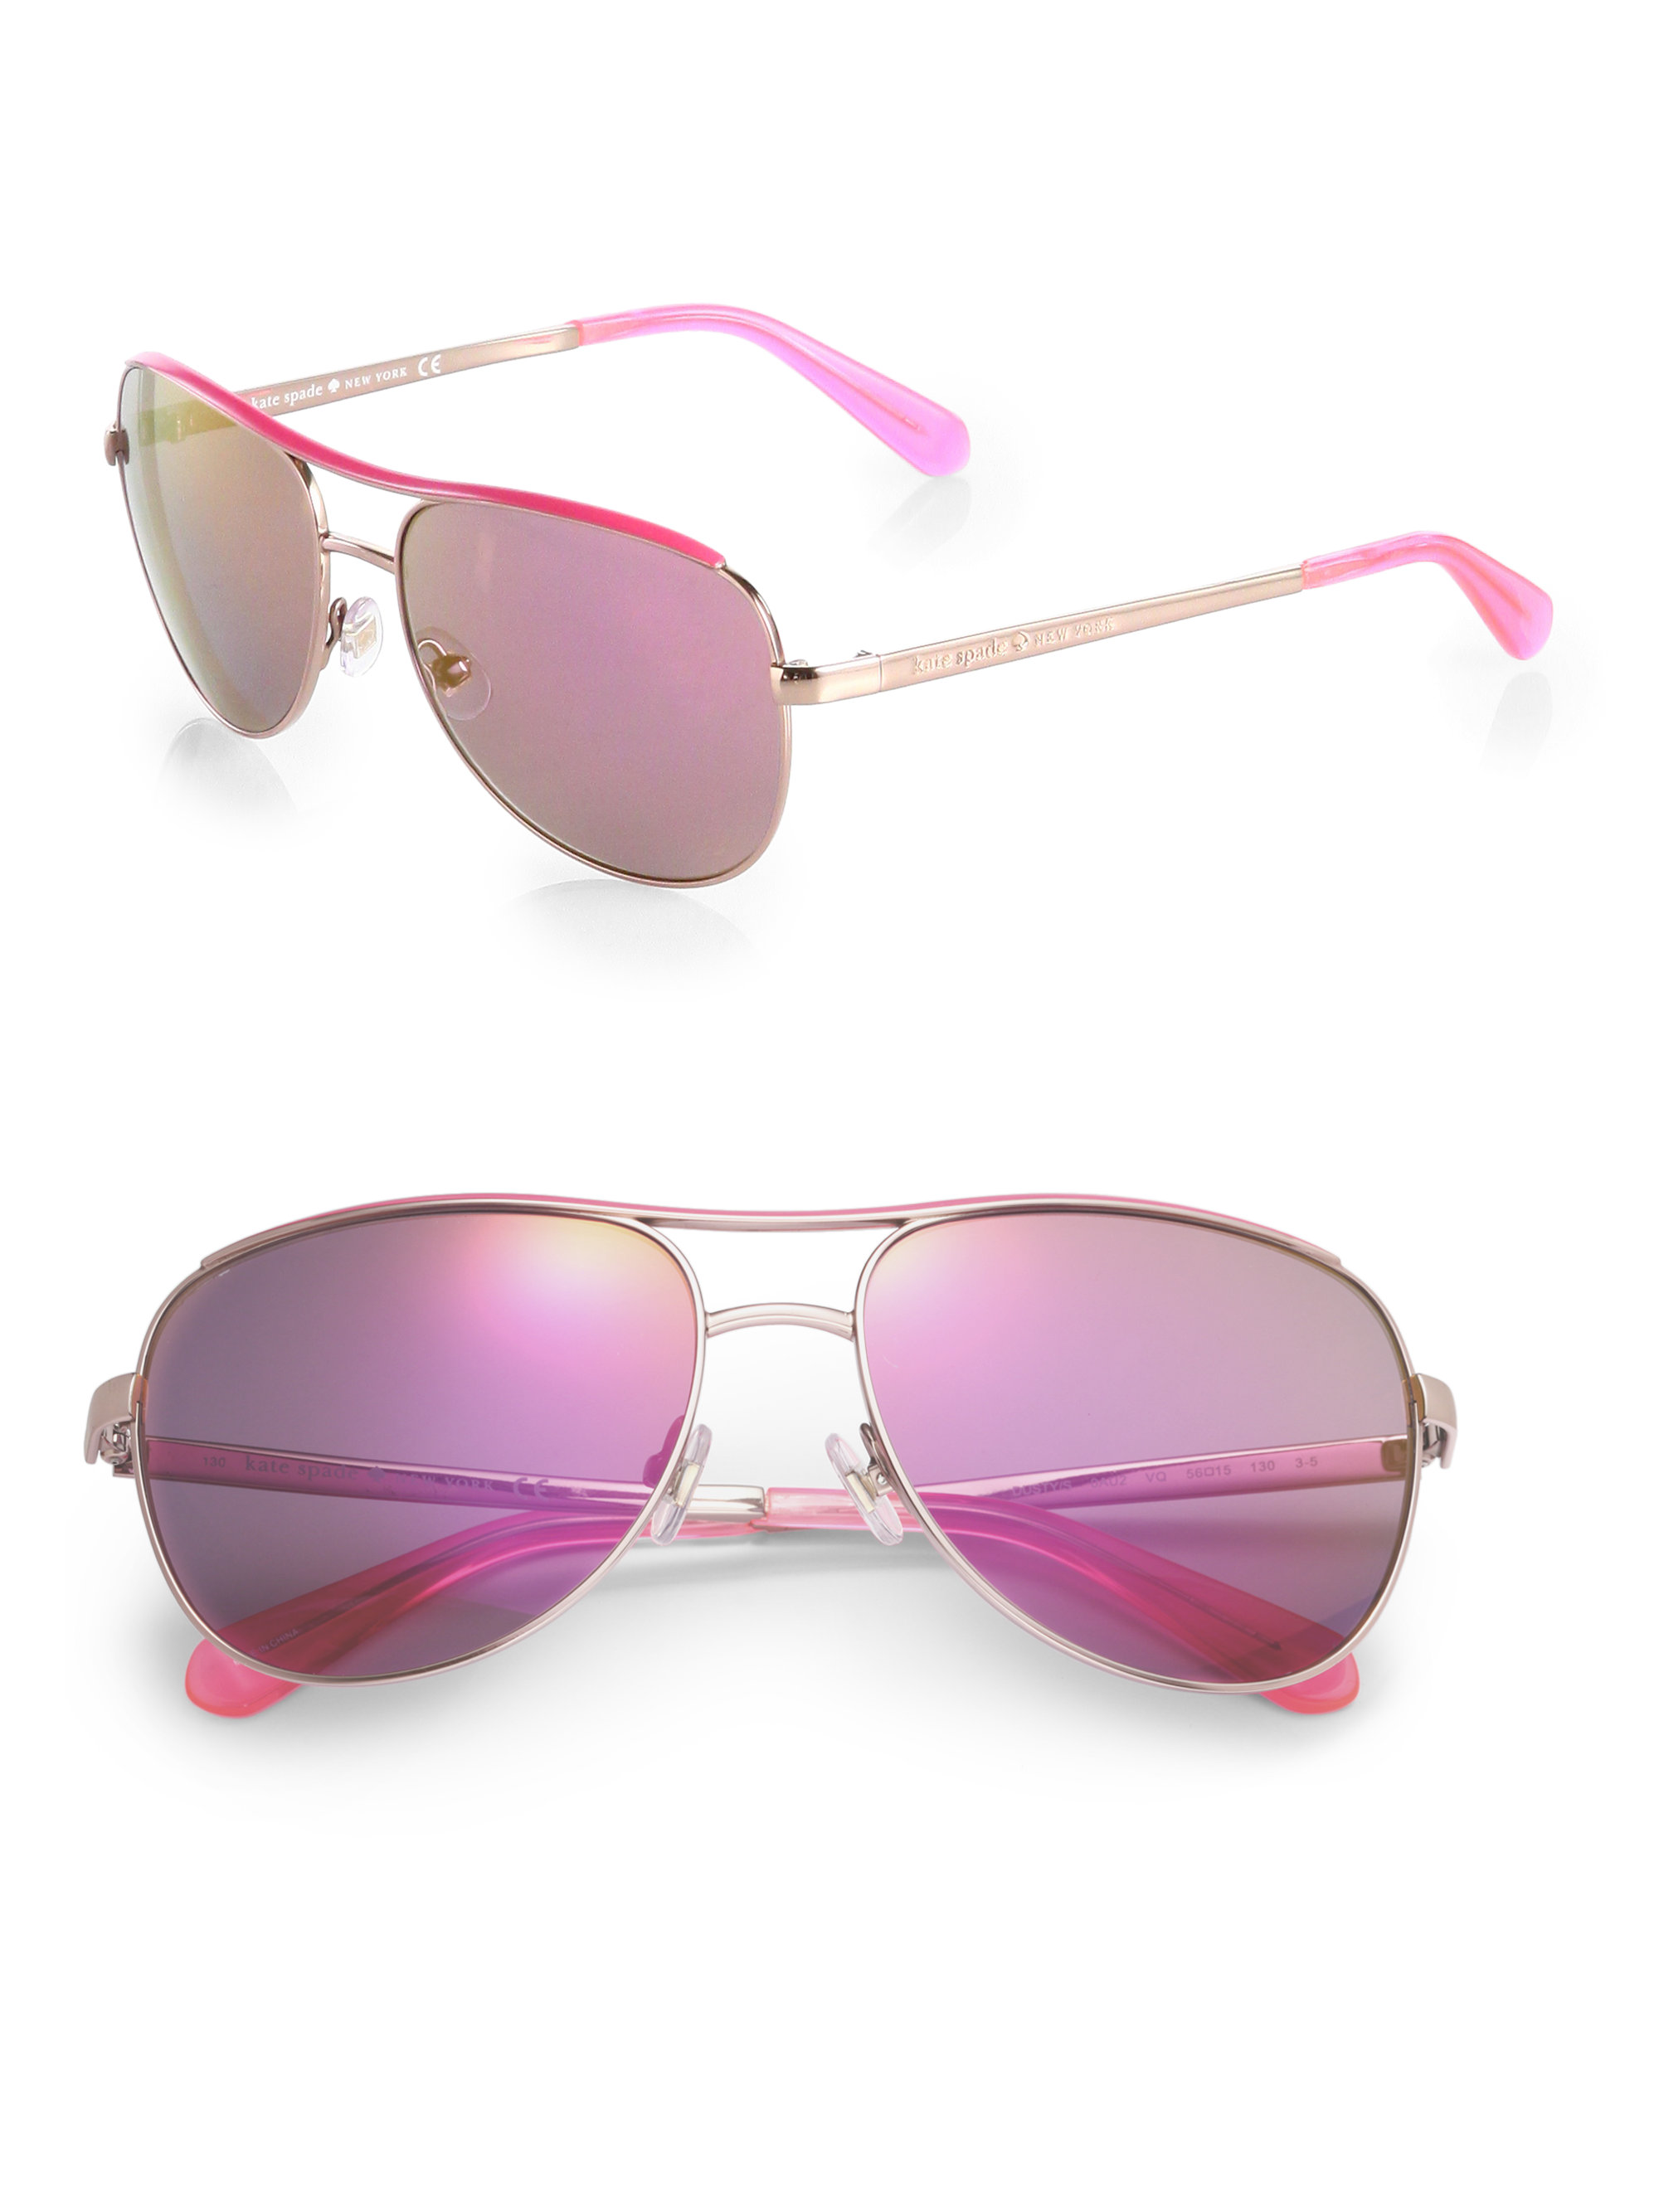 Pink Gucci Aviator Sunglasses | Louisiana Bucket Brigade